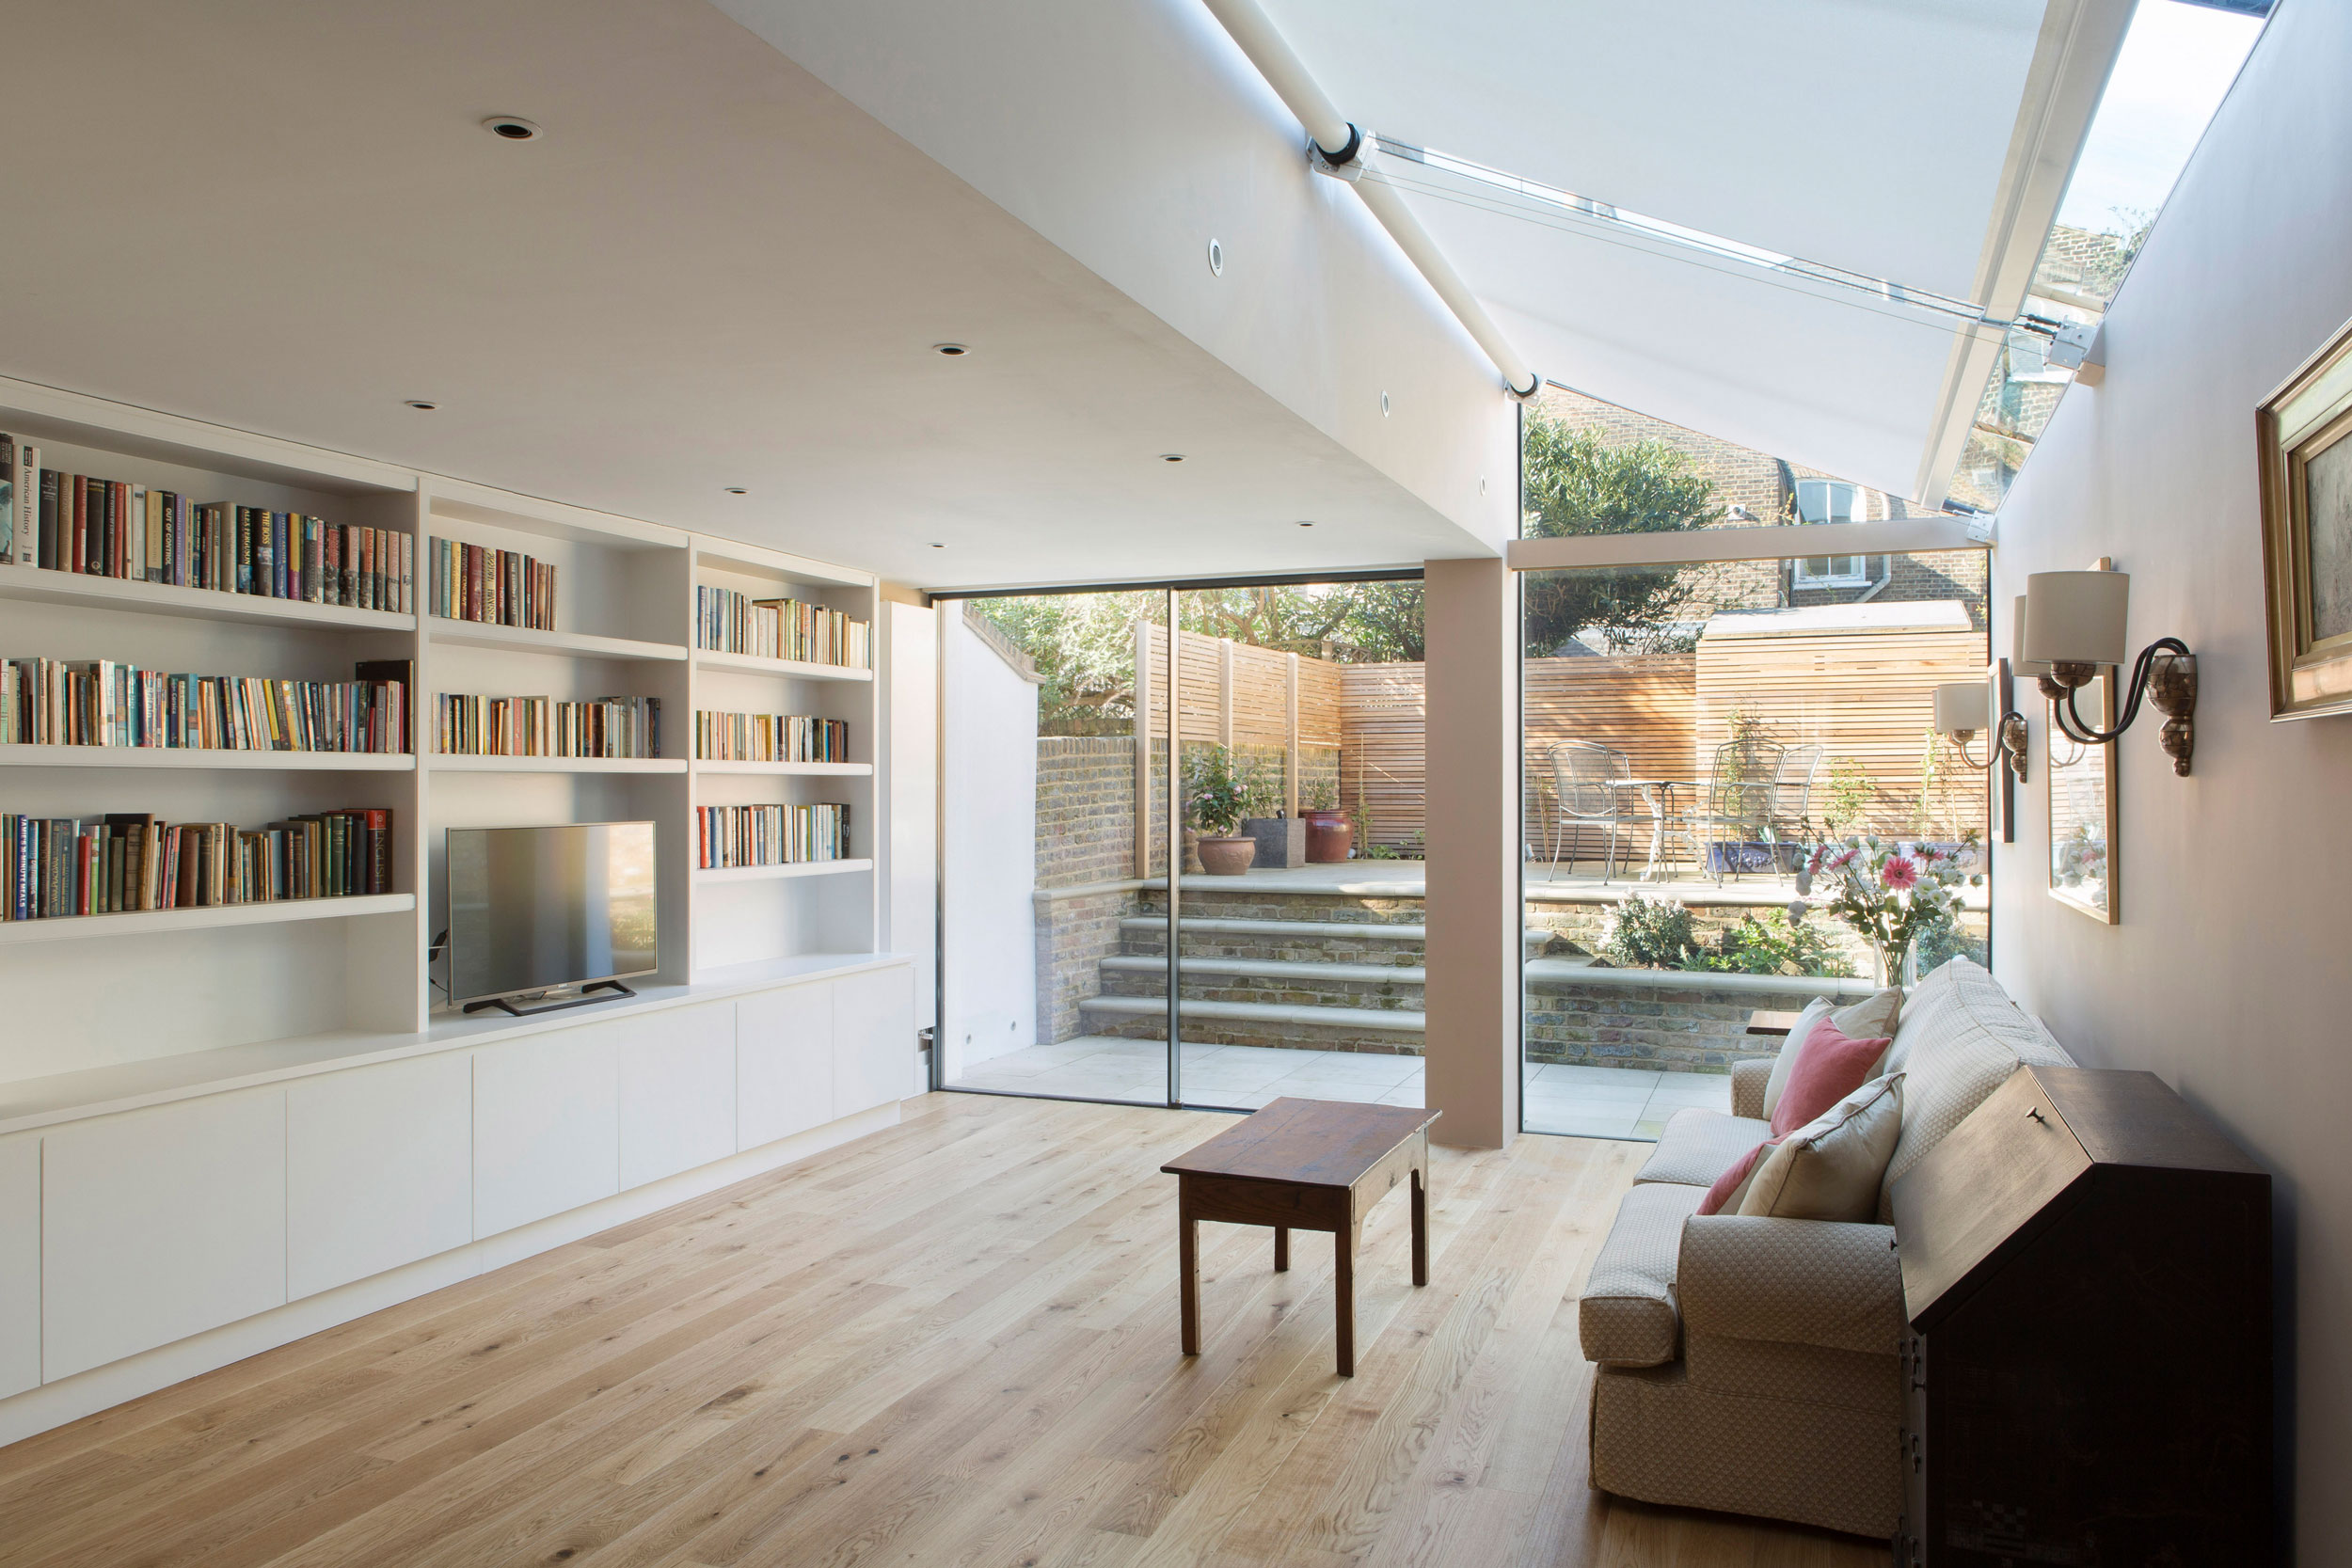 Silent Gliss SKYLIGHT SHADING SYSTEMS